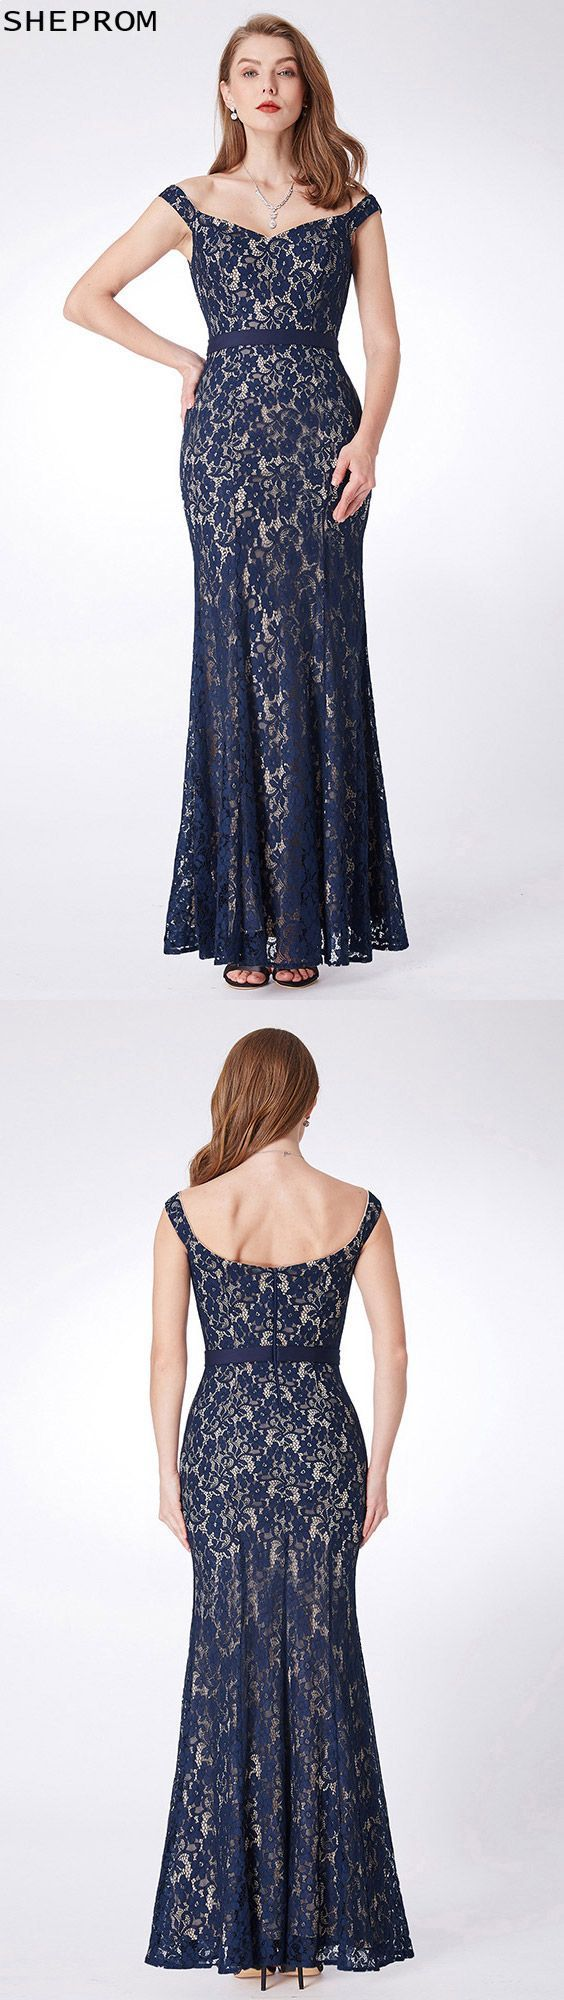 Long mermaid lace navy blue formal dress with off shoulder straps